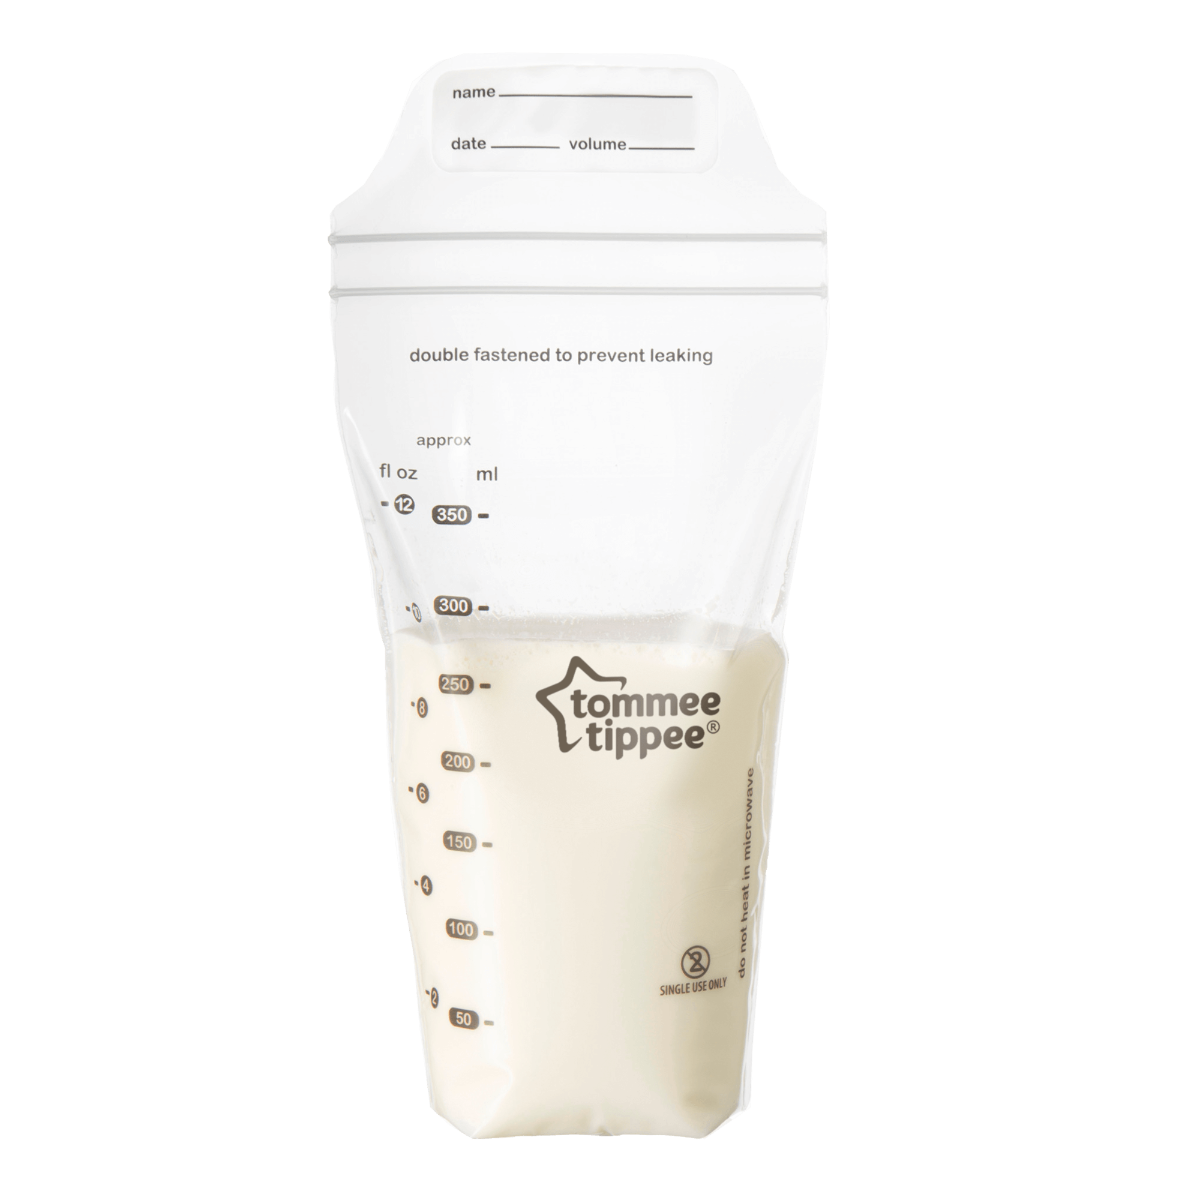 36-Count Tommee Tippee Breast Milk Storage Bags